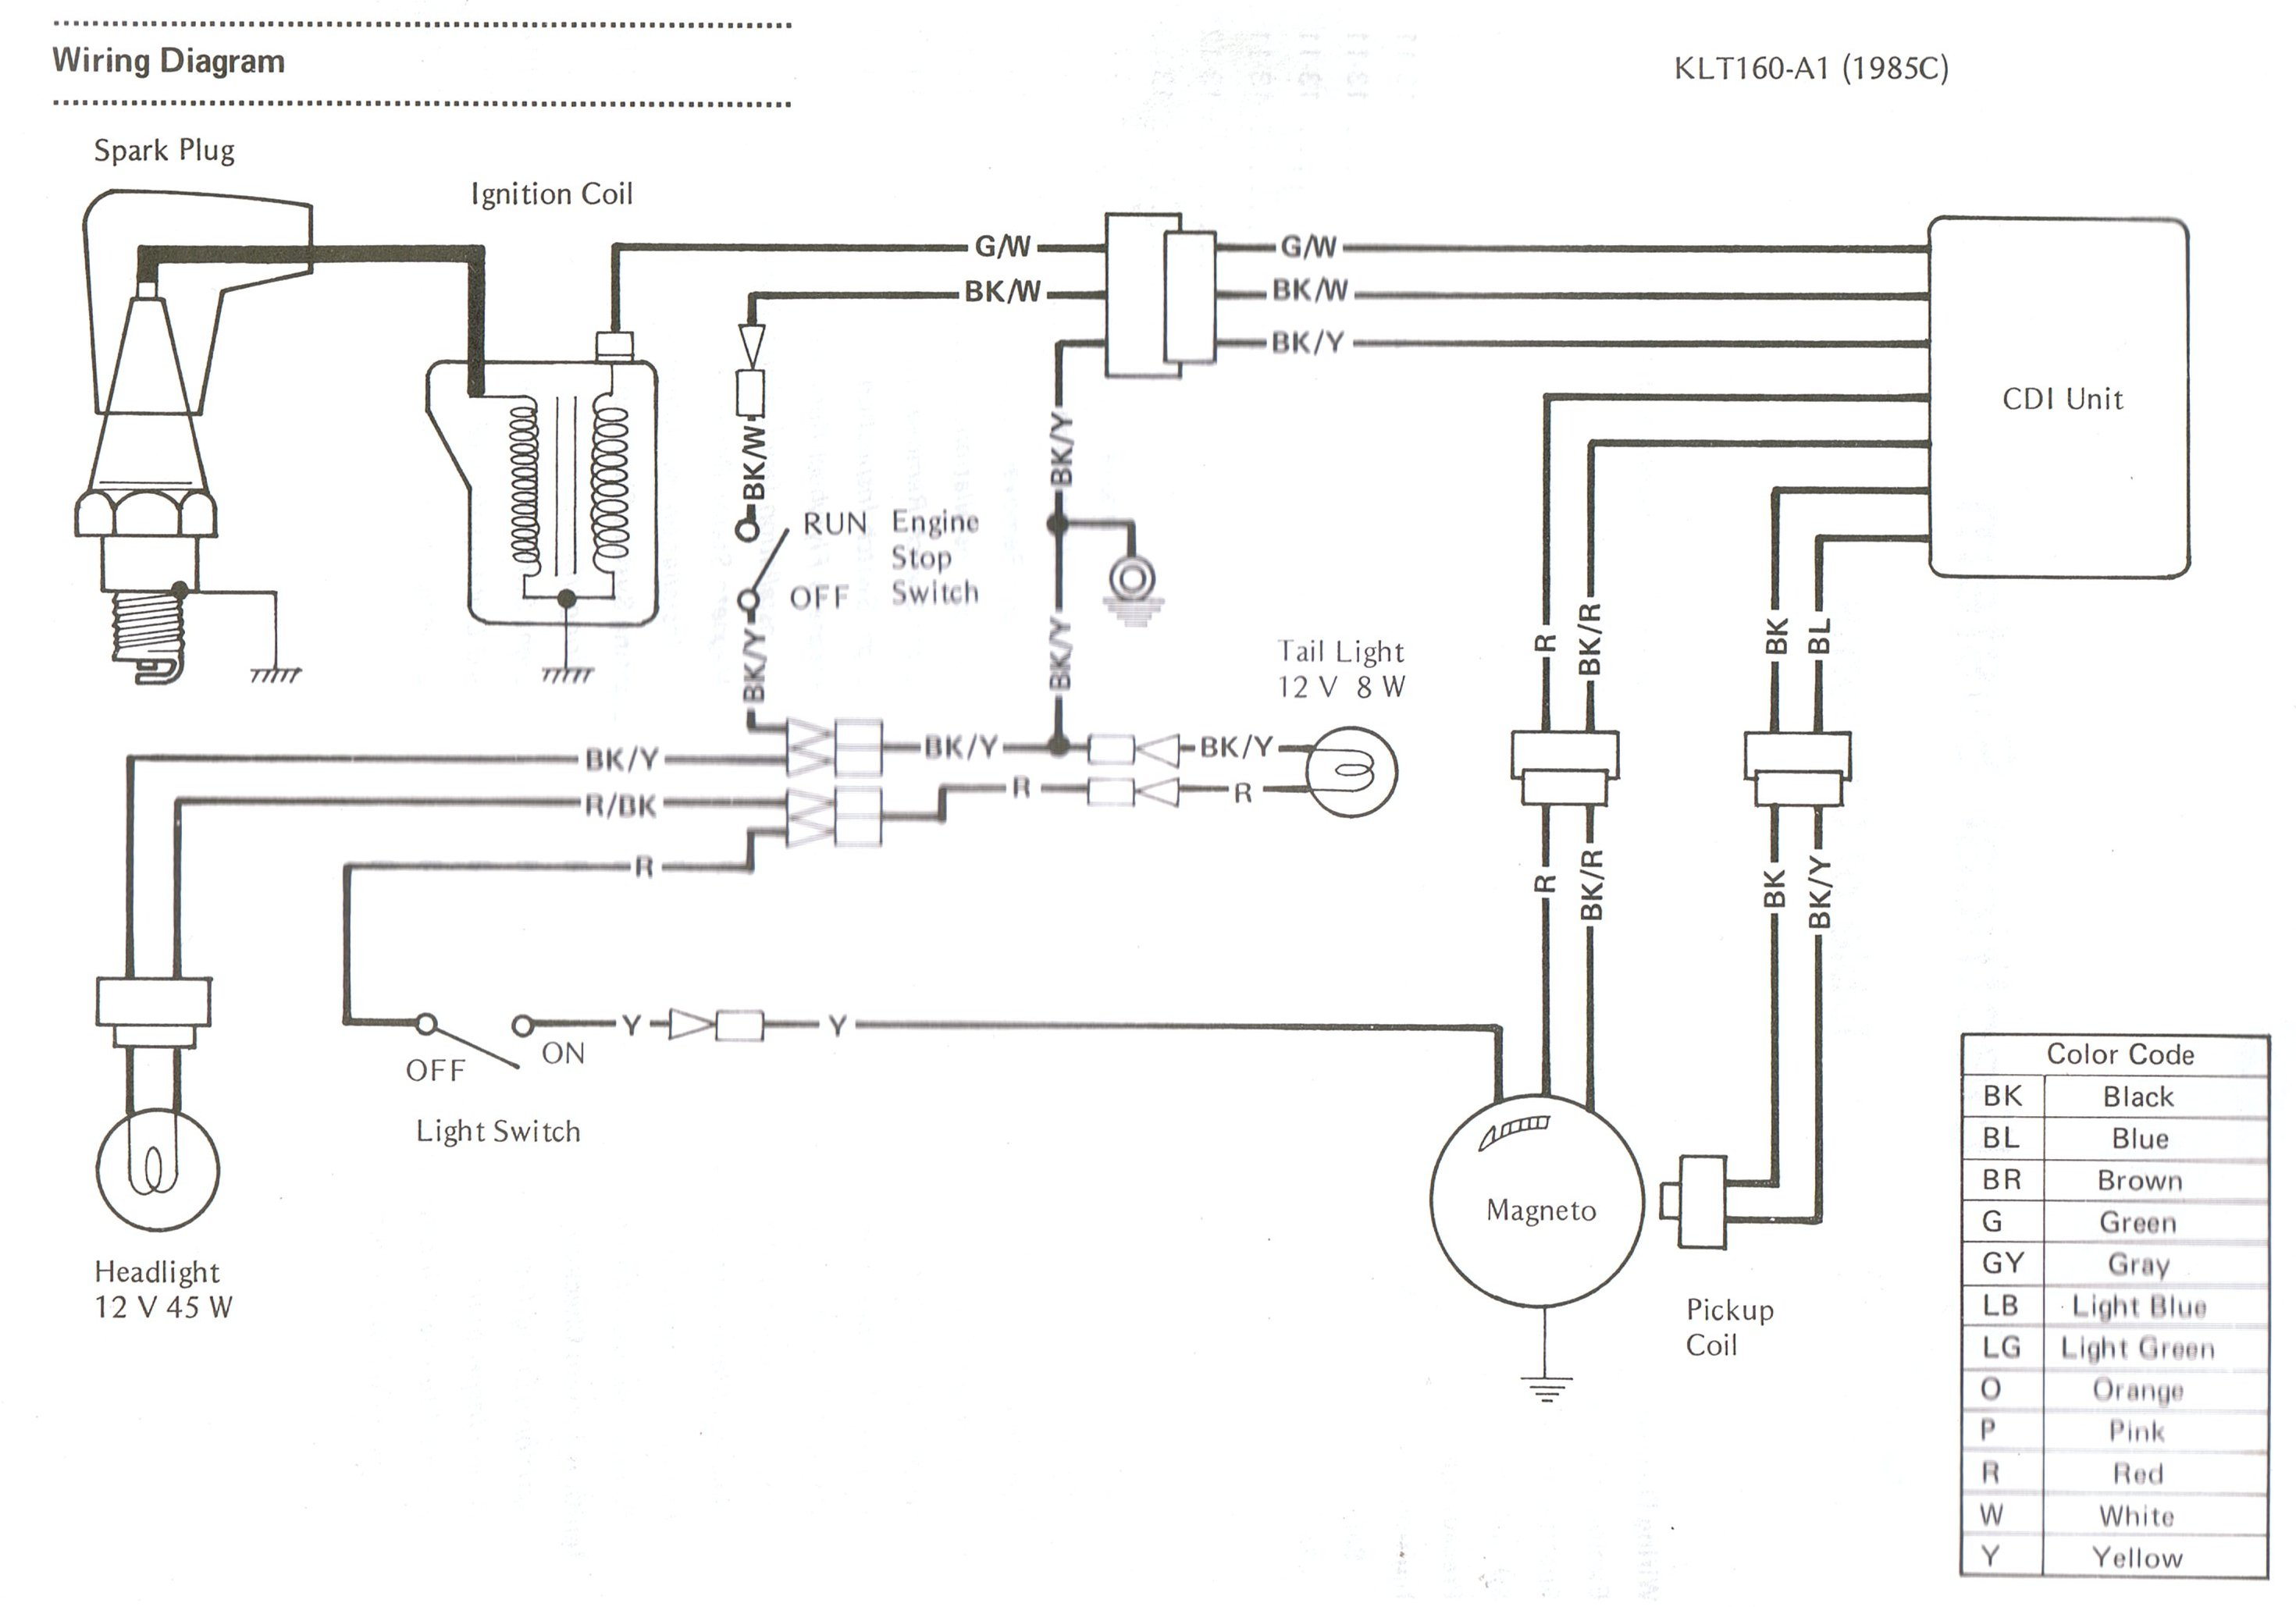 kawasaki kdx 200 wiring diagram - premium wiring diagram ... wiring diagram electrical of kawasaki klt 200 #4